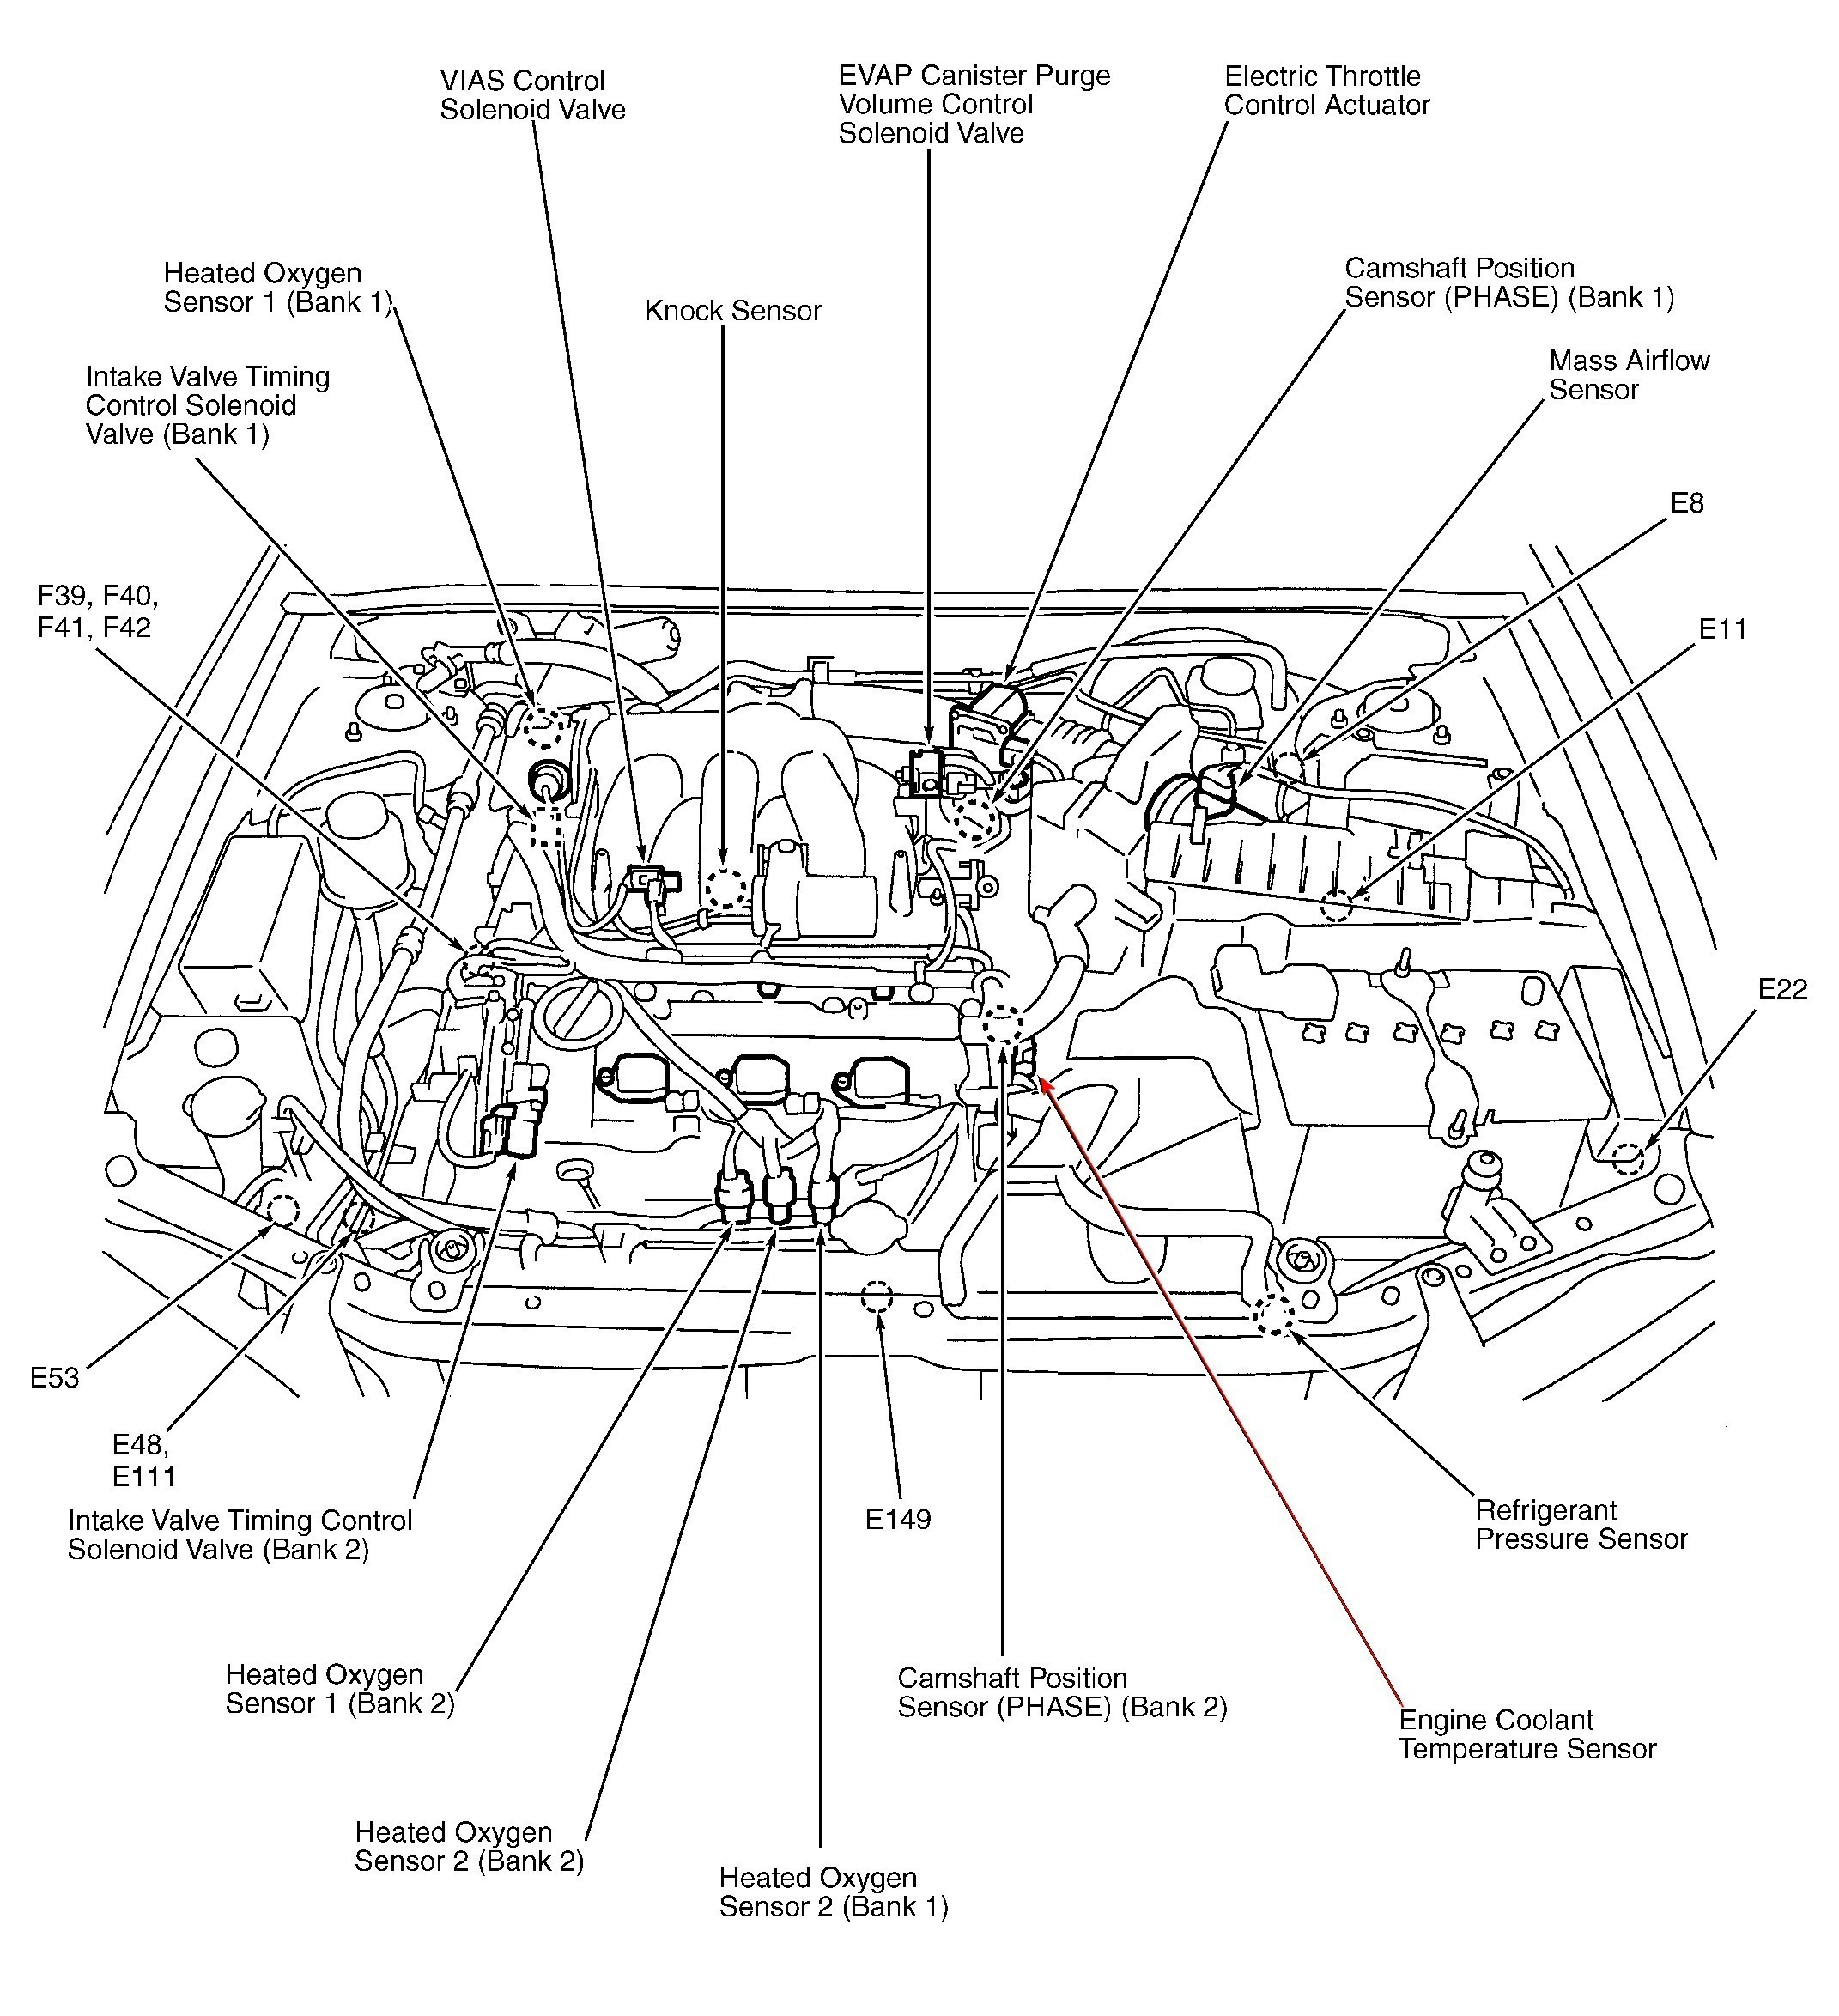 2012 Nissan Altima Engine Diagram Wire Diagram for 1999 Nissan Sentra Nissan  Wiring Diagrams Of 2012